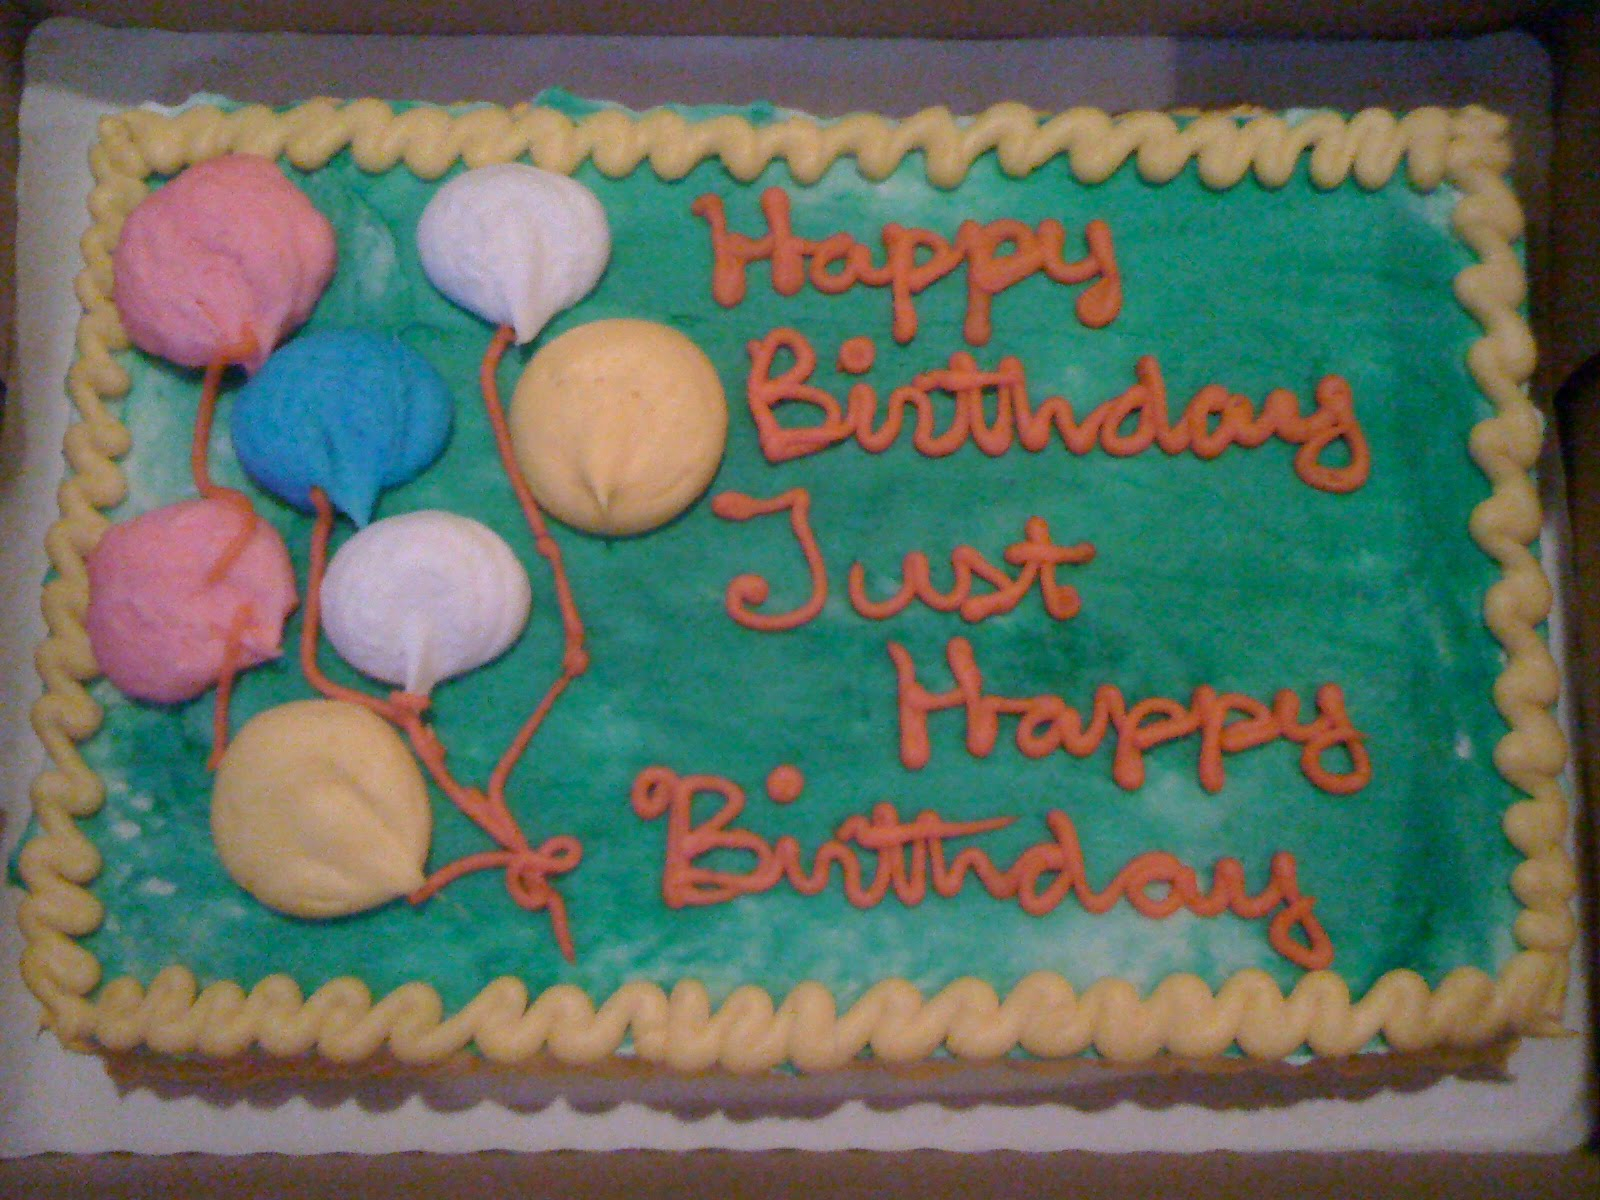 1200 In 32 Marvelous Image Of Funny Birthday Cakes